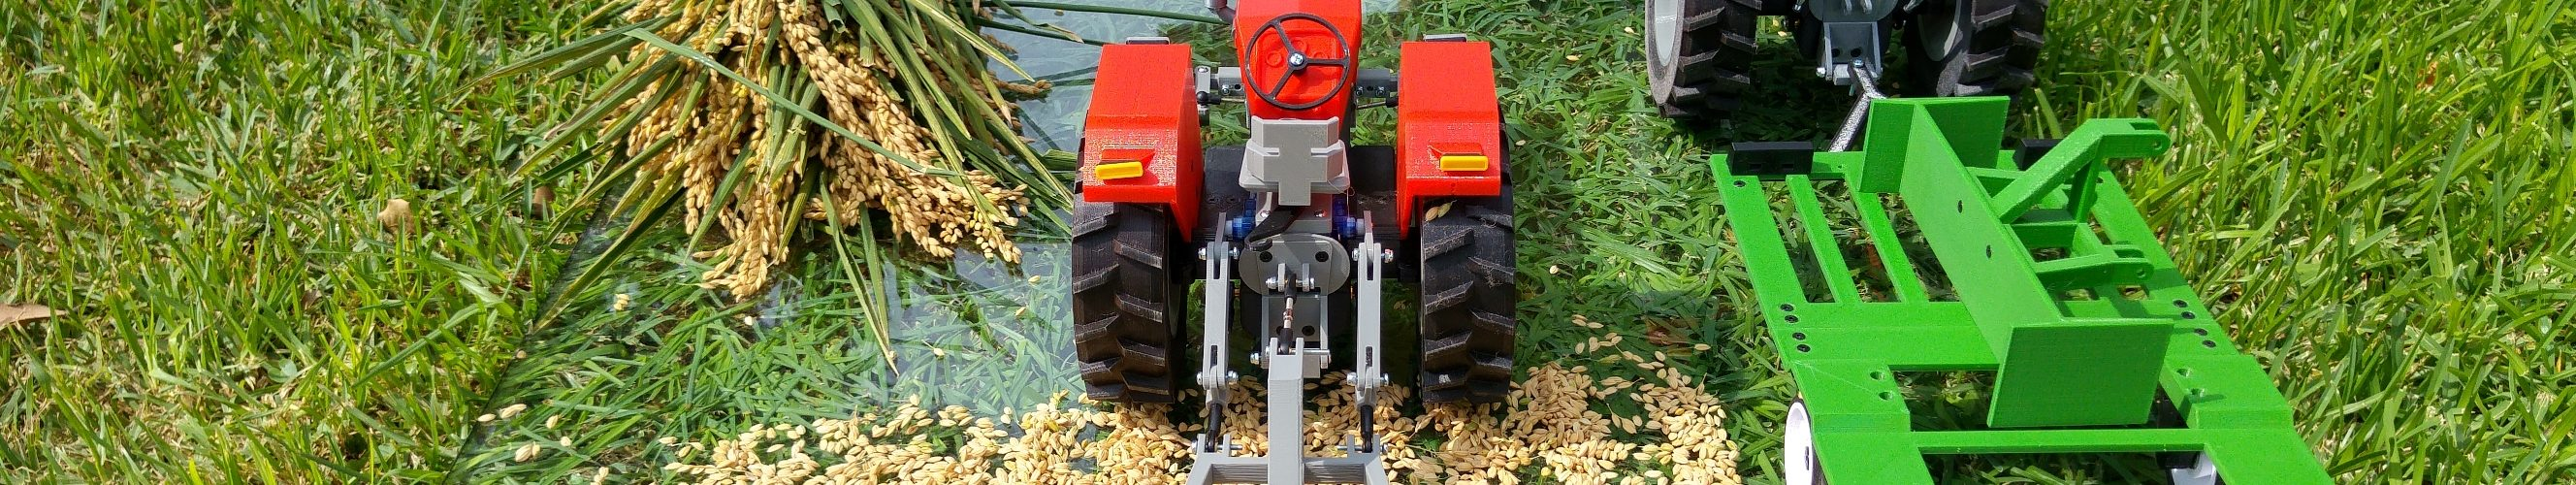 openrc-tractor-release-rice-back